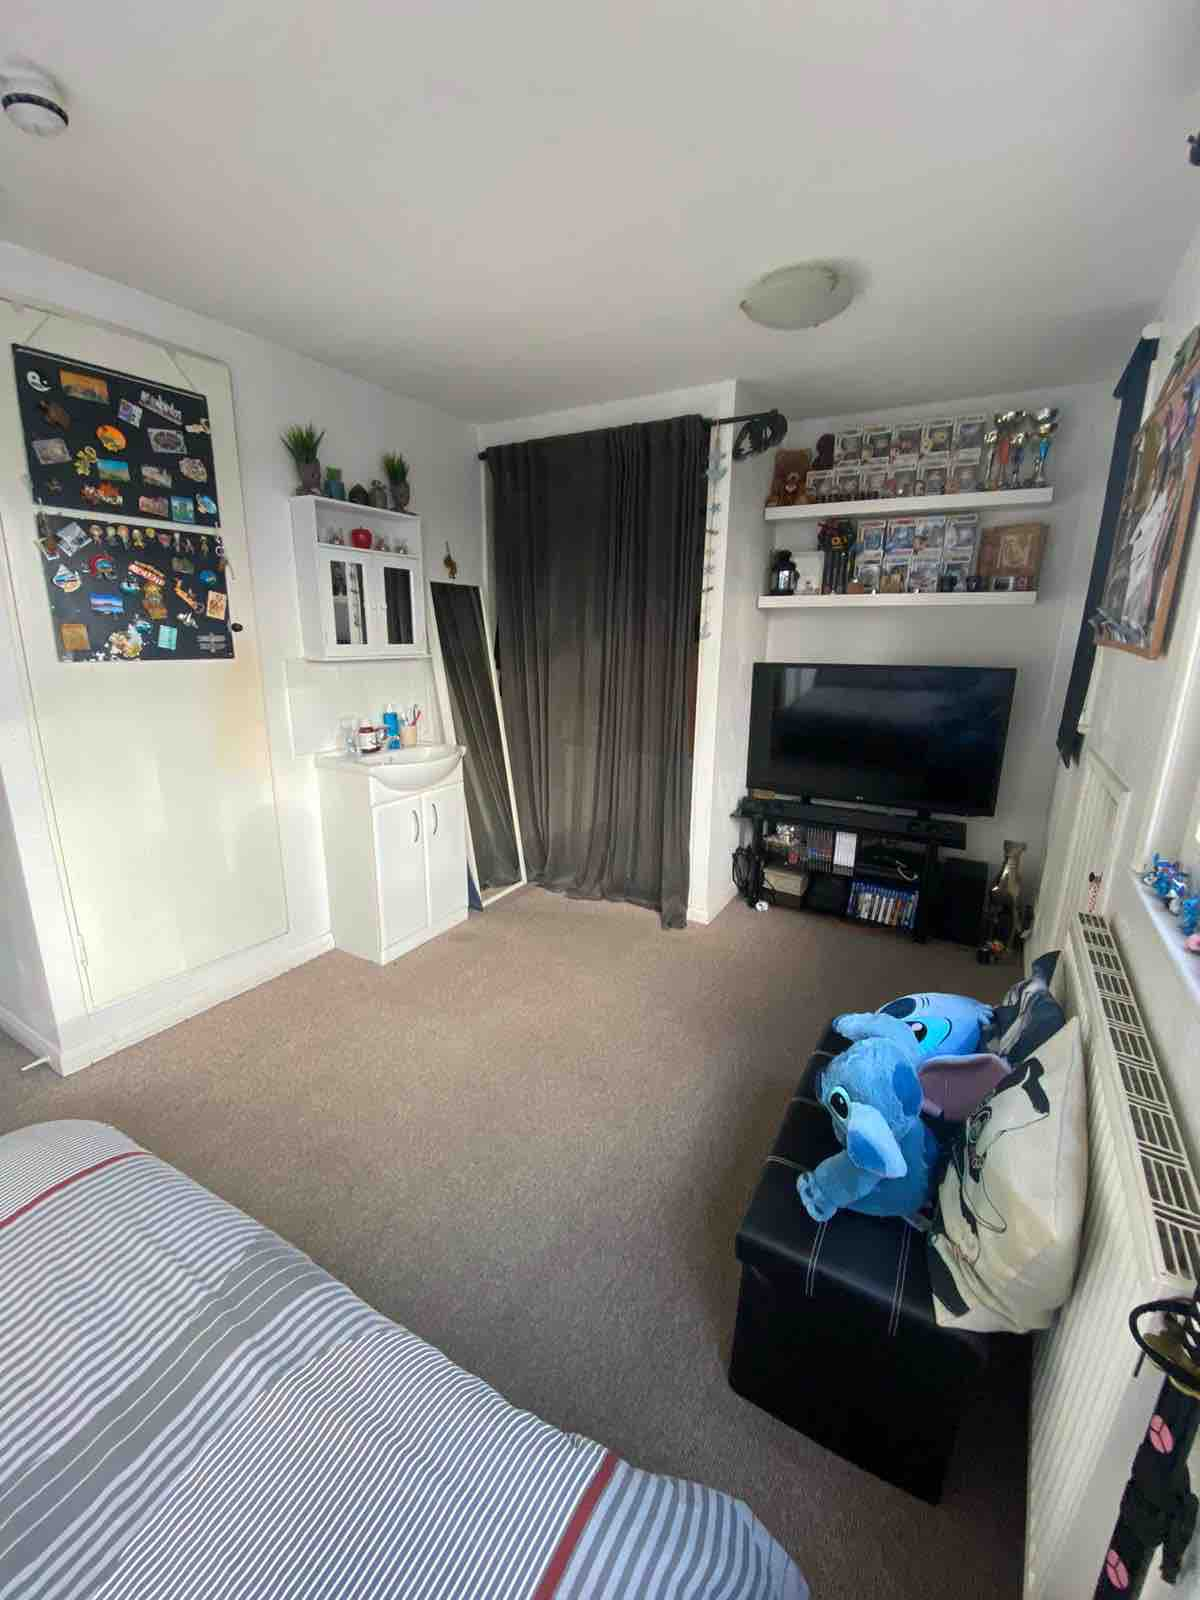 1 room in South Acton, London, W38LP RoomsLocal image